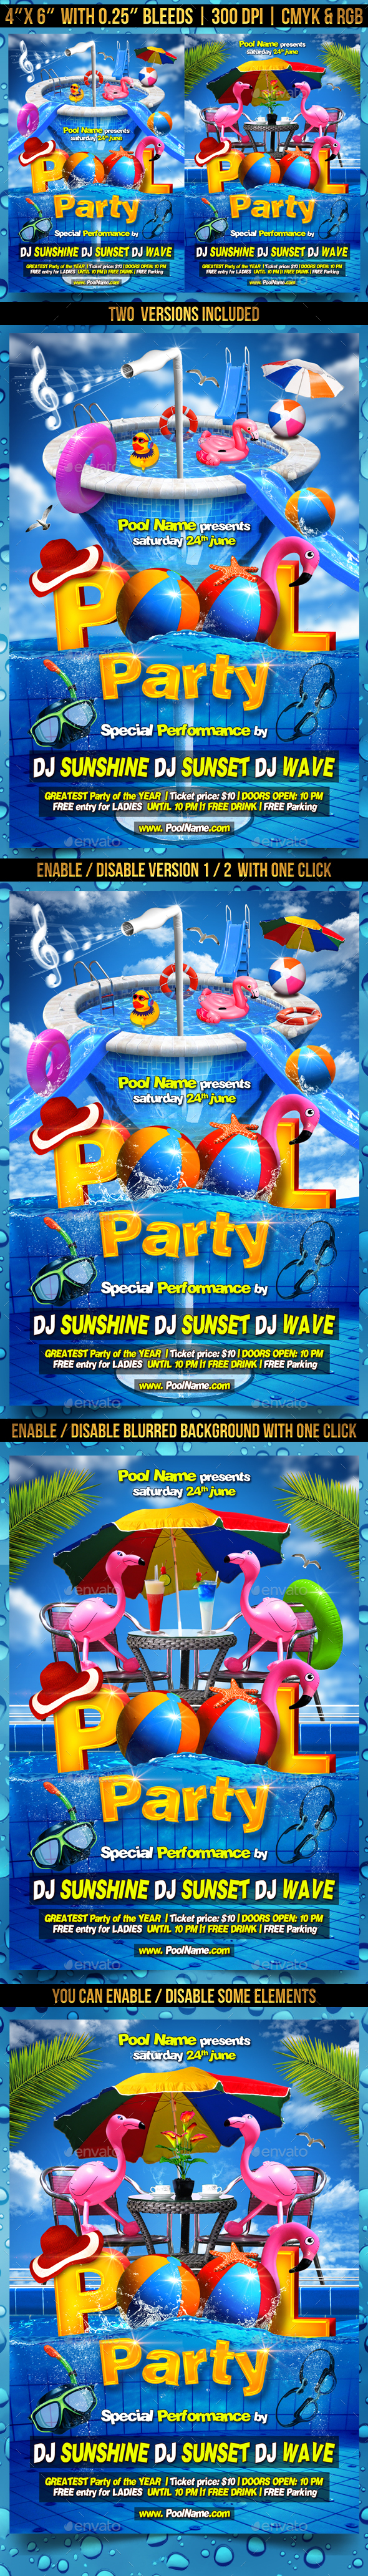 Pool Party Flyer Template by Gugulanul | GraphicRiver